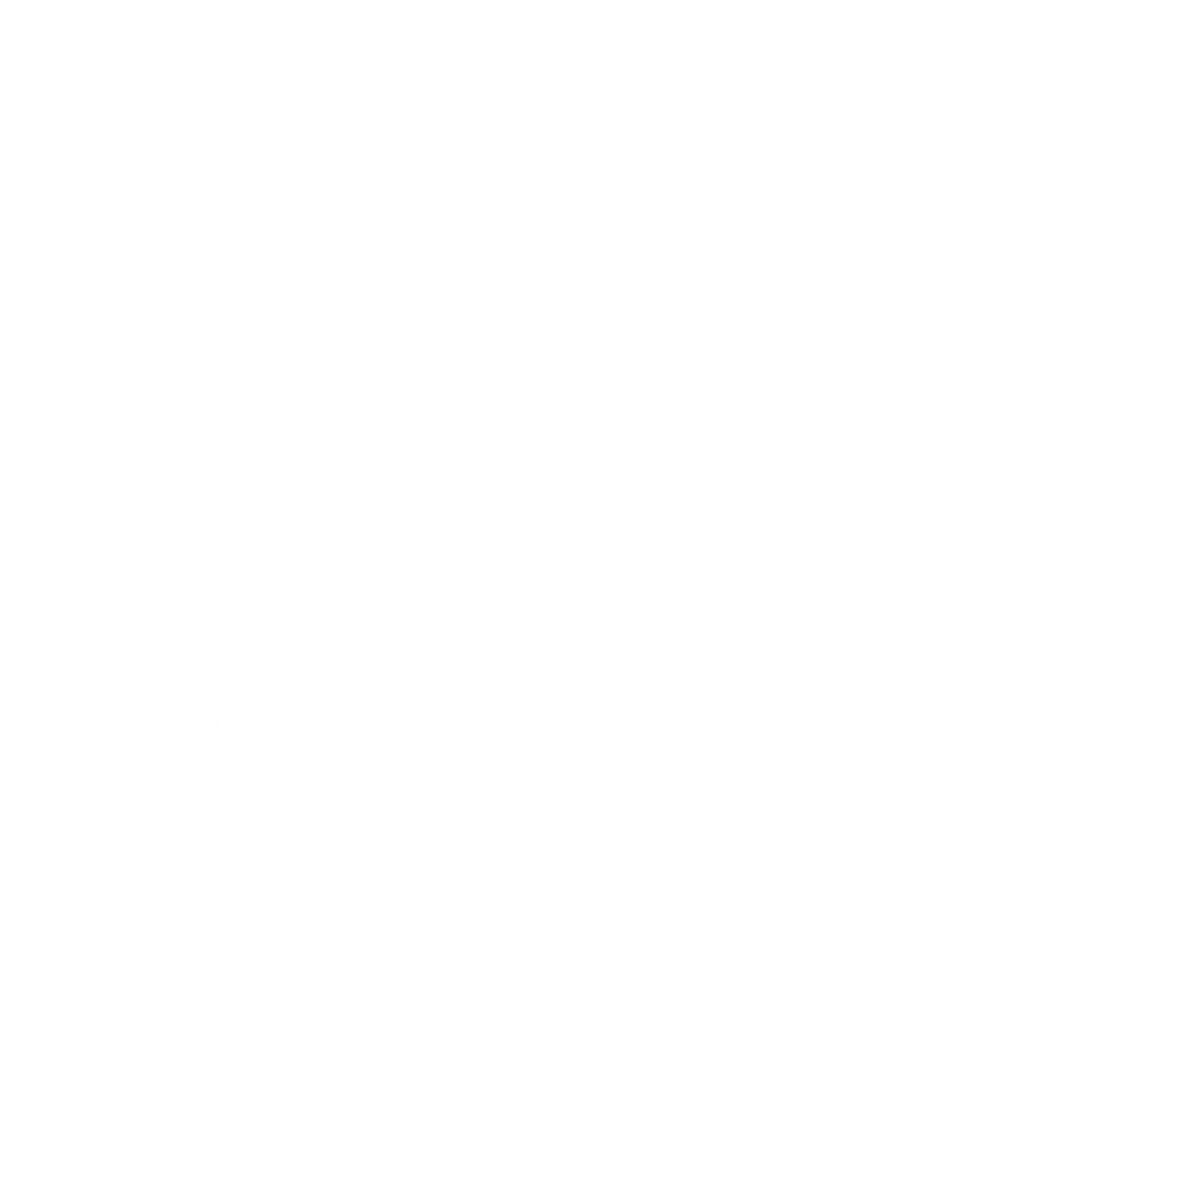 Hartlepool Stage Society